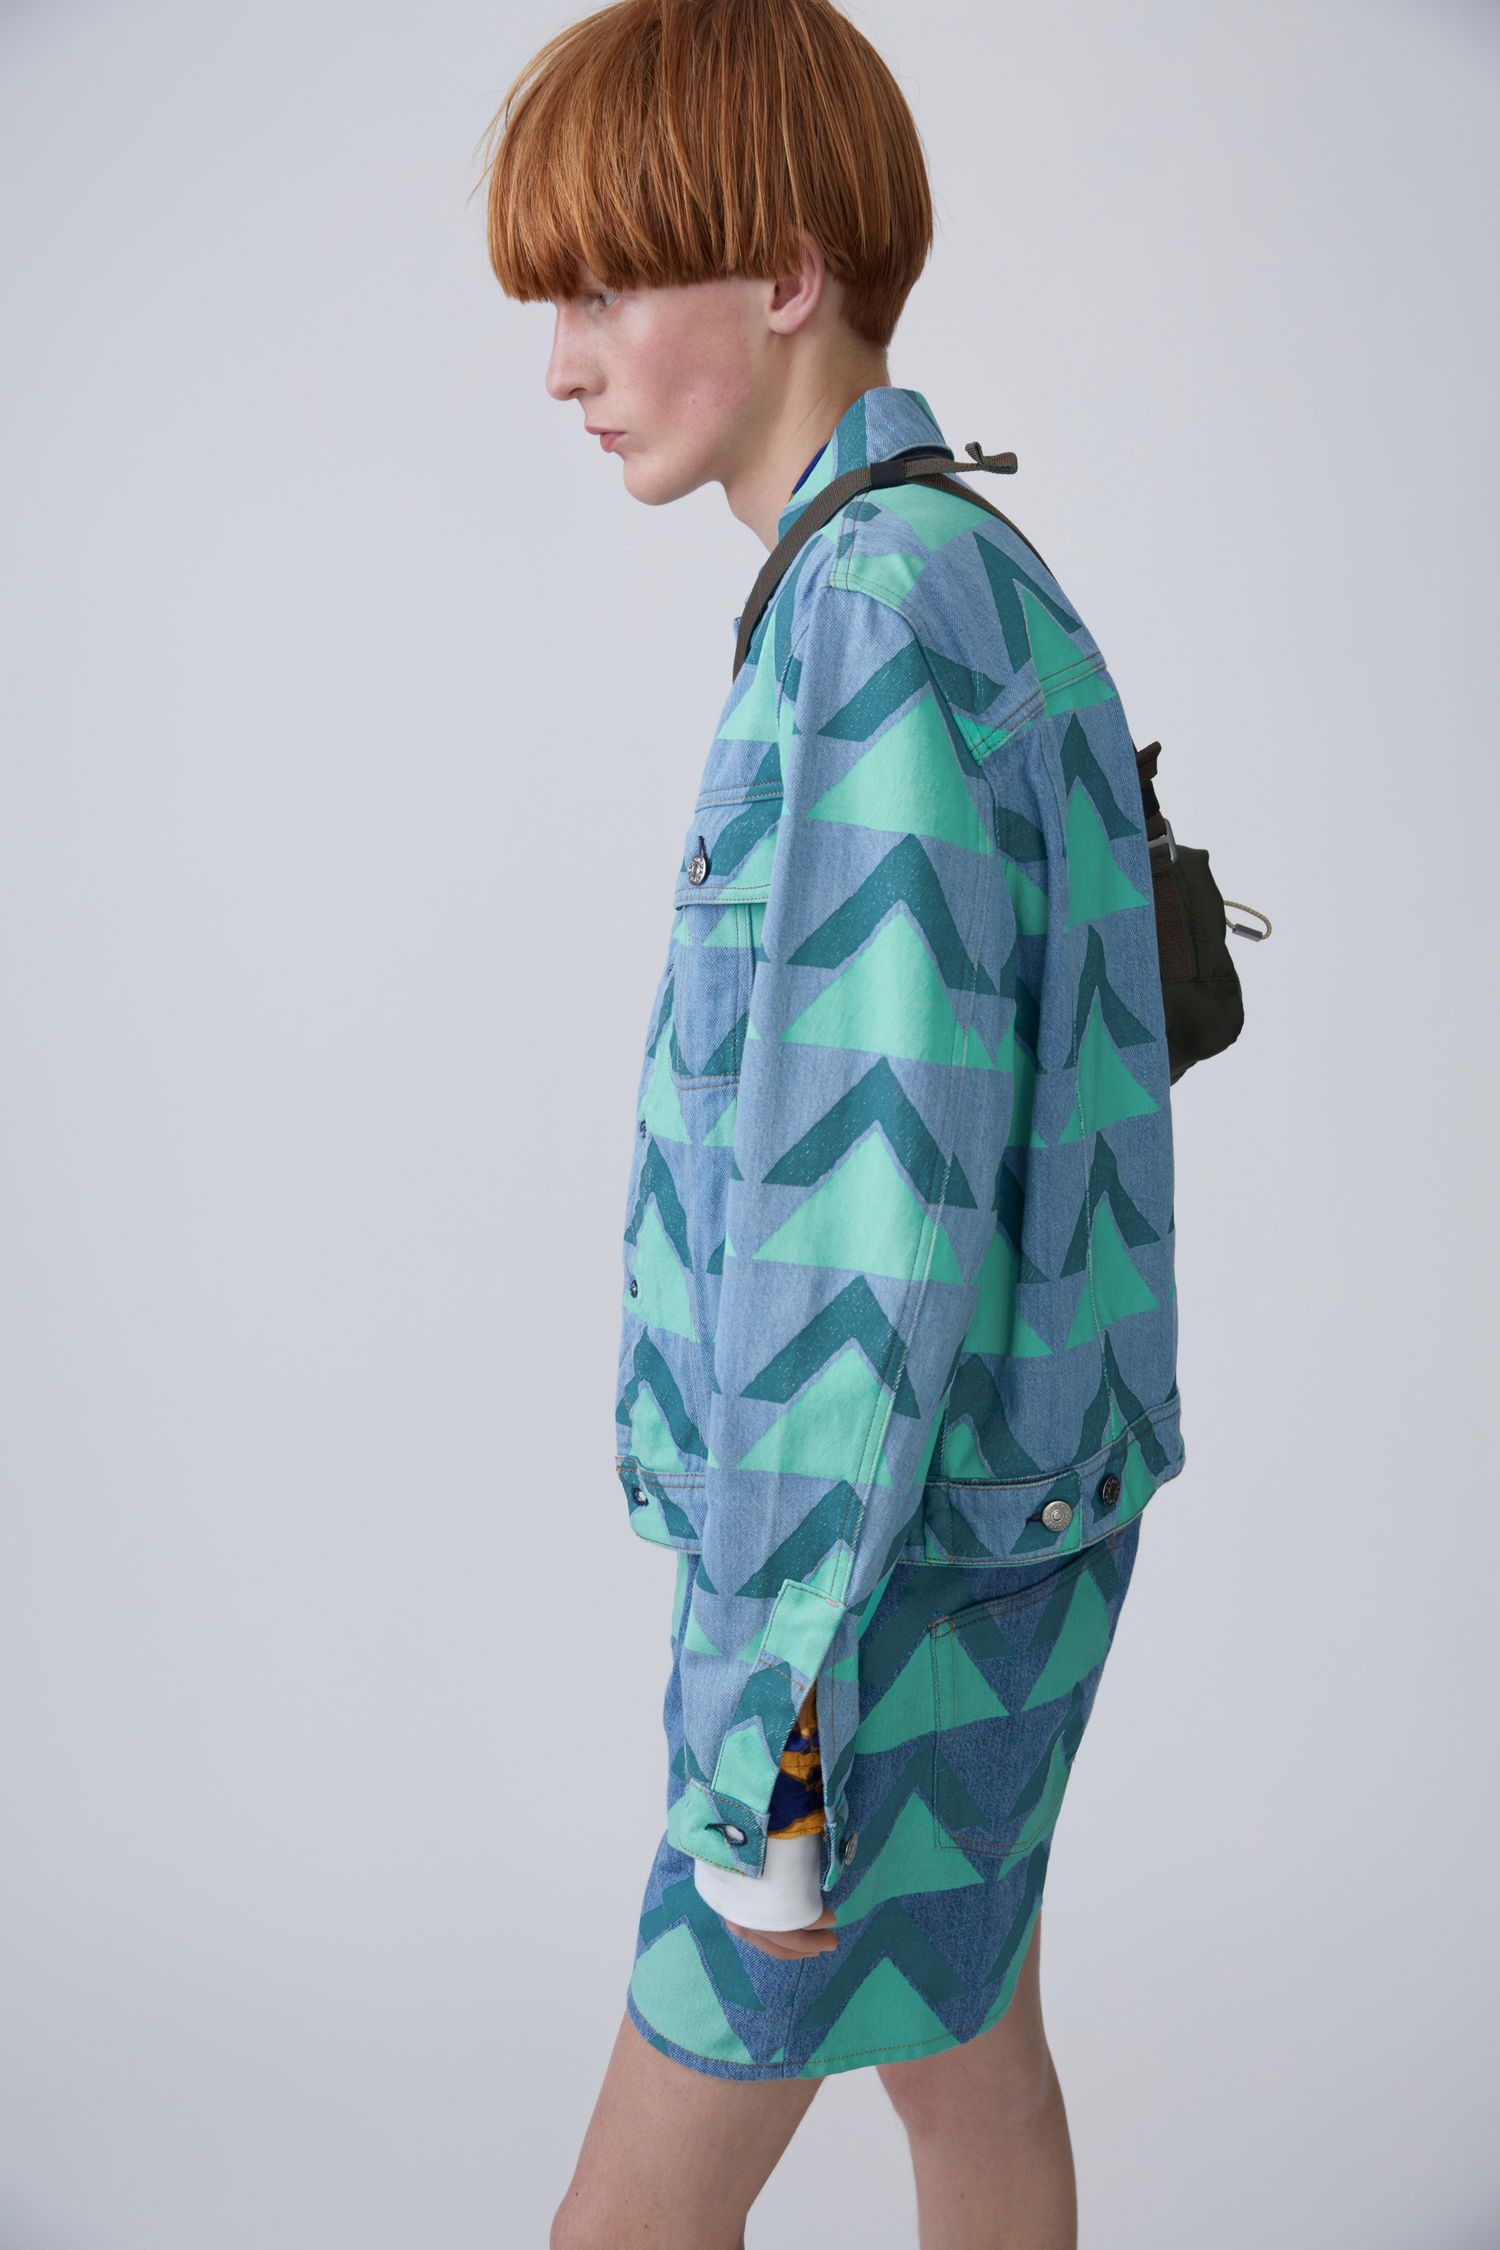 Acne Studios Blå Konst Tent print mid vintage green mountain jacket in a reworked, oversized, boxy fit.